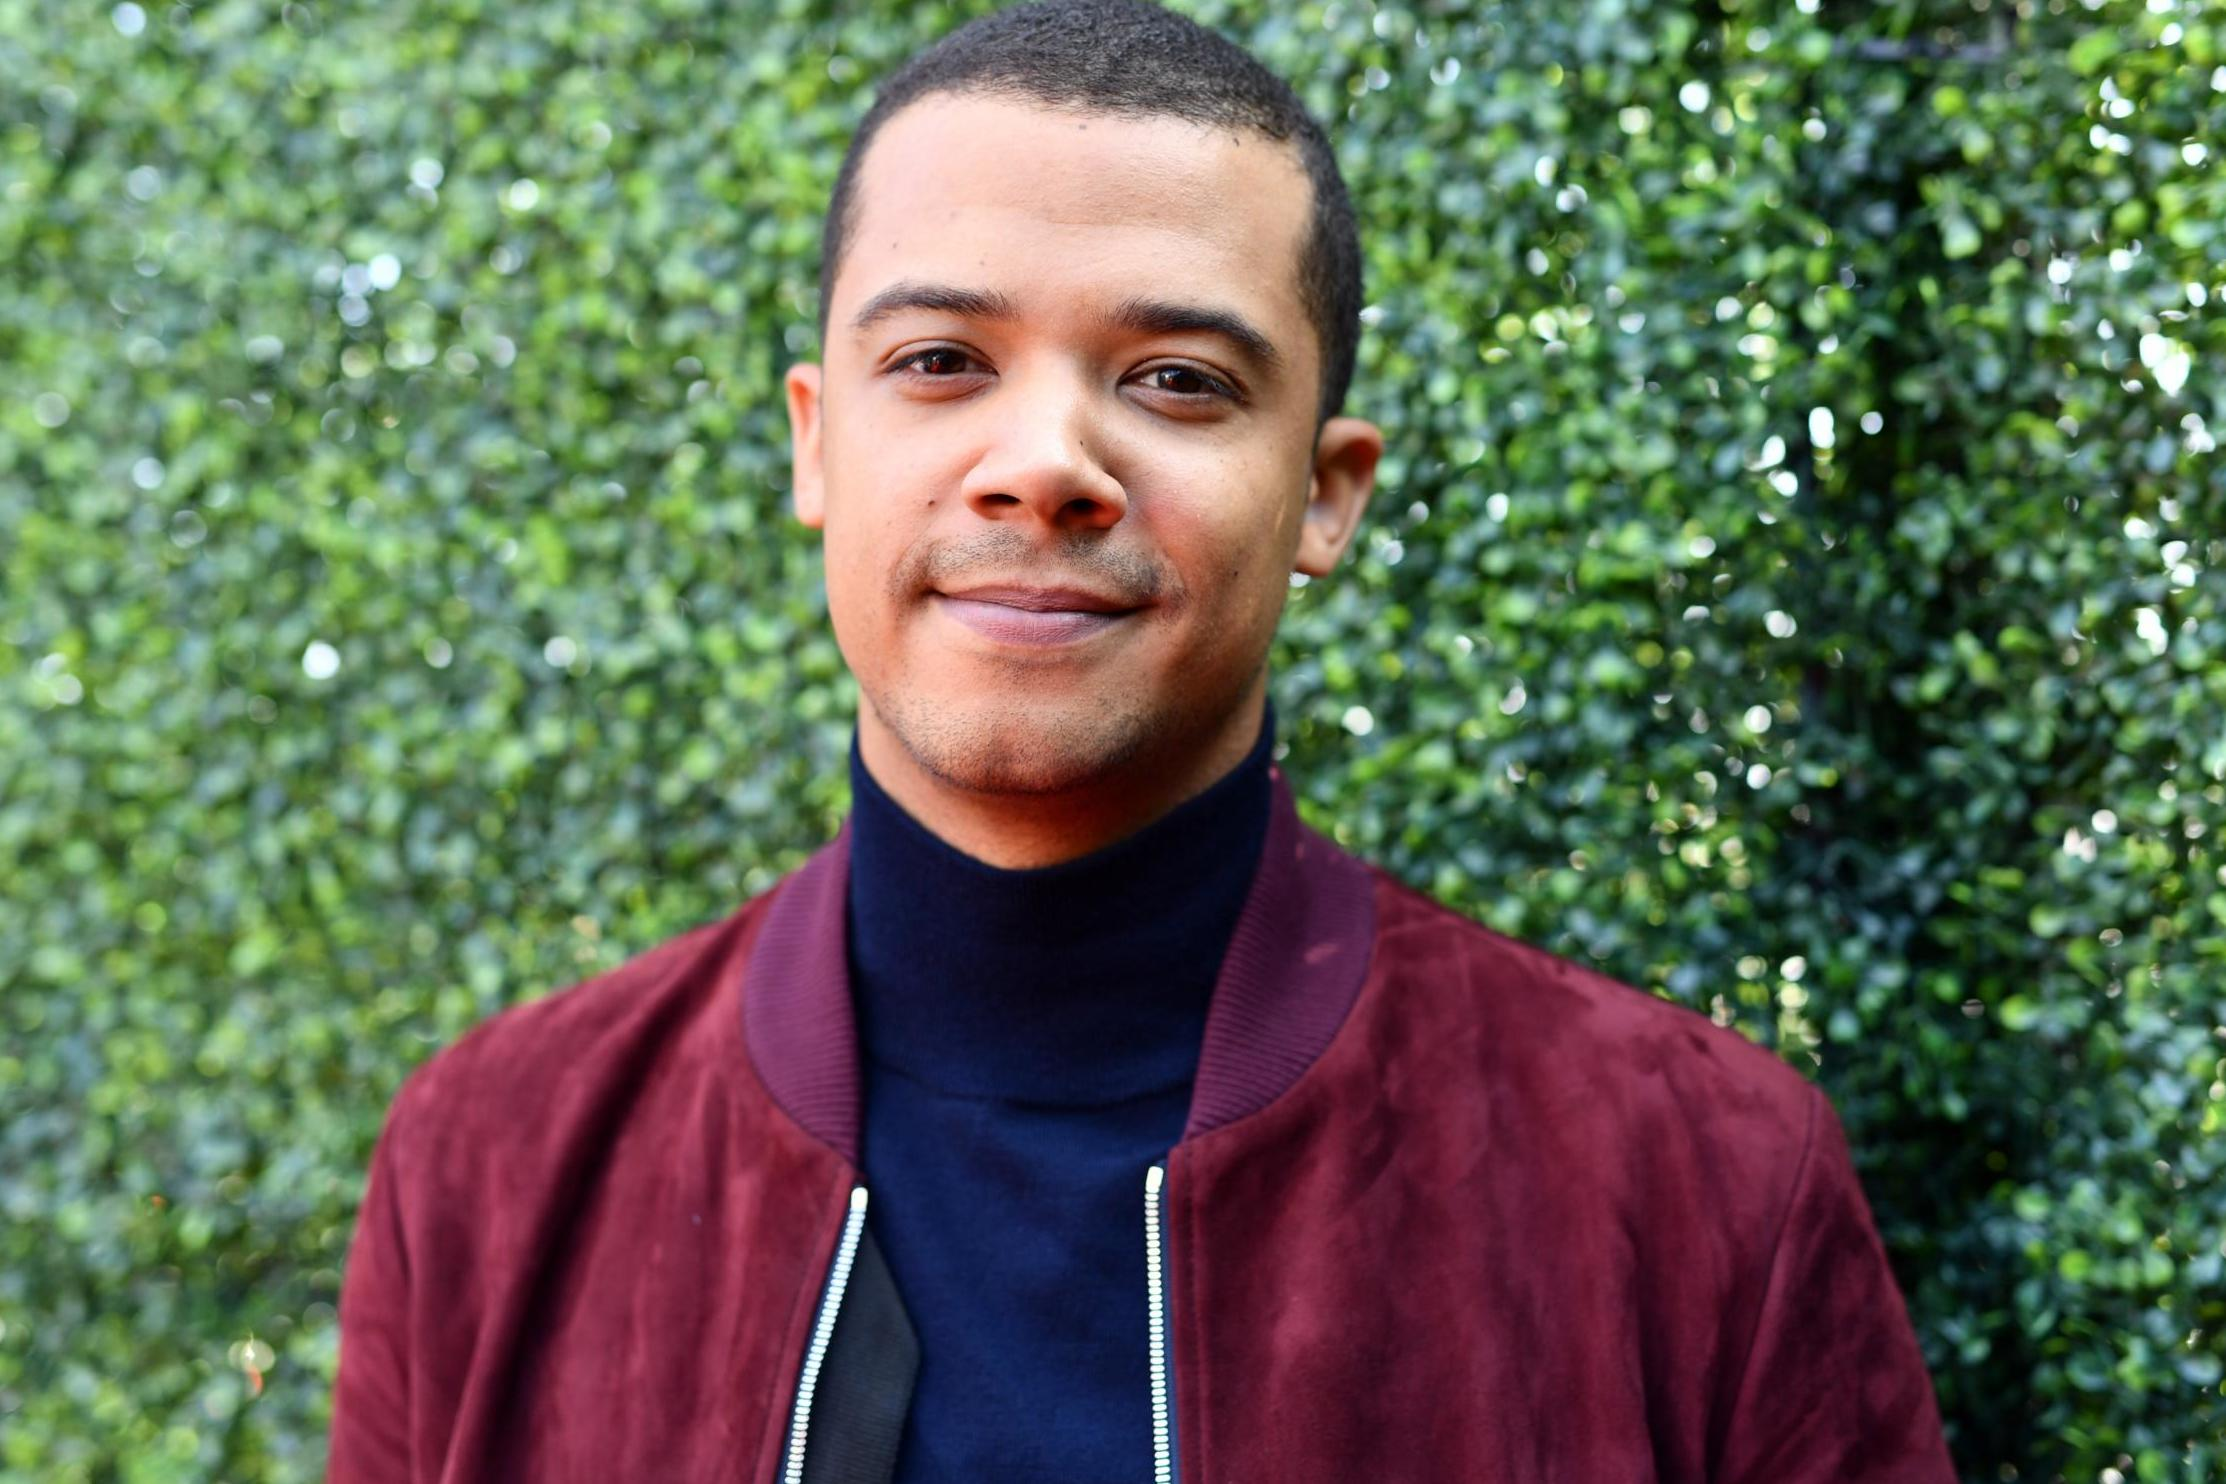 Game of Thrones actor Jacob Anderson says reaction to finale was 'a shame'